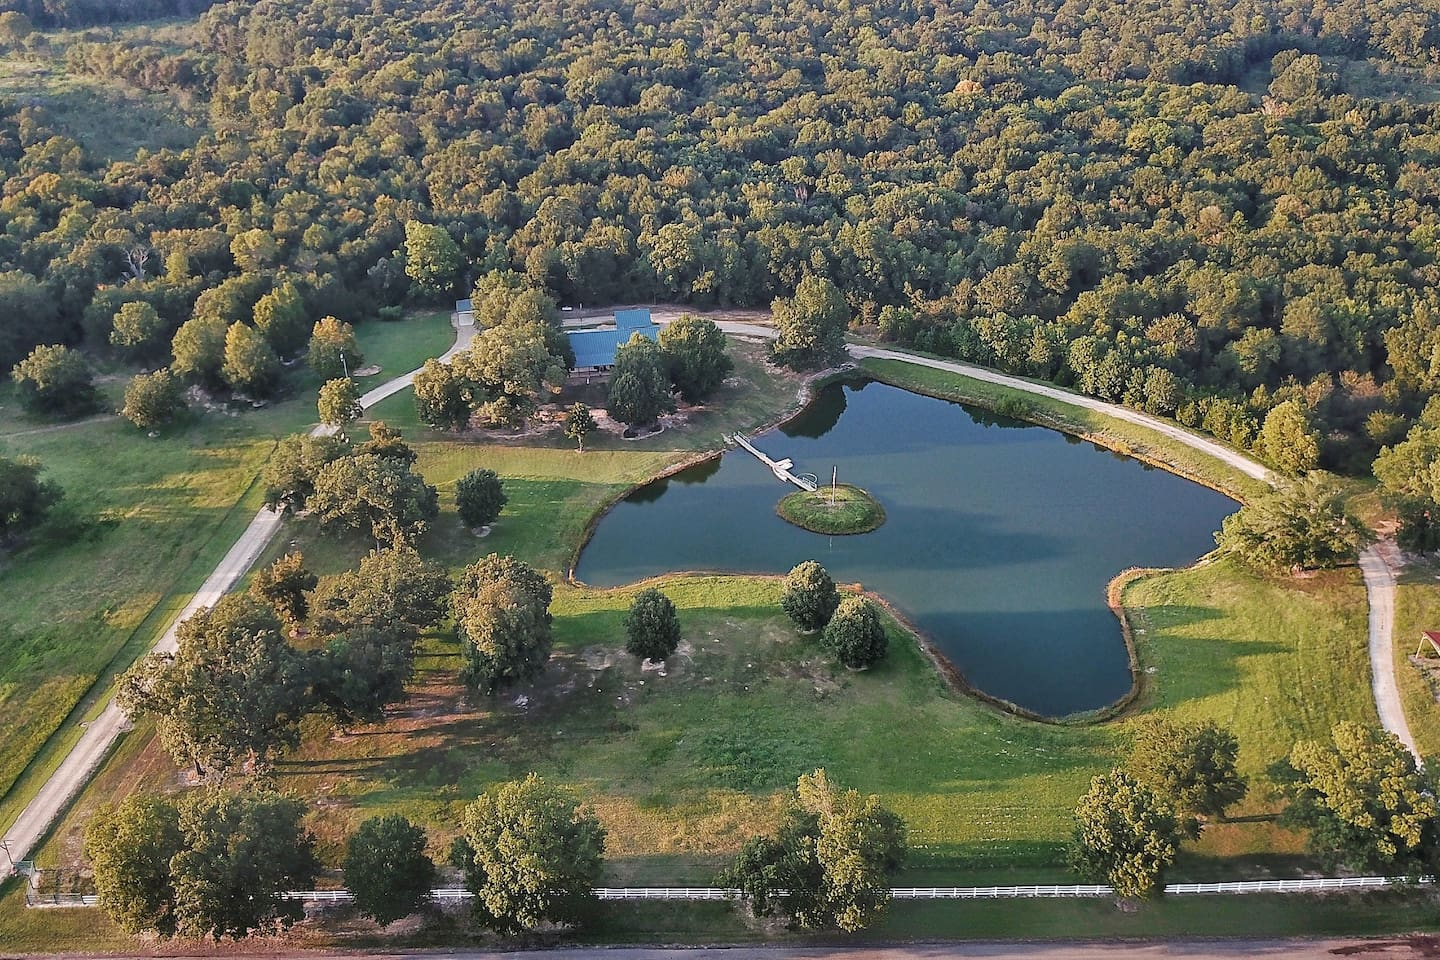 20 acres of Texas tranquility featuring woods, trails, meadows, 2 acre pond, salt water swimming pool, organic gardens, rescue animals, bird watching, peace and quiet.